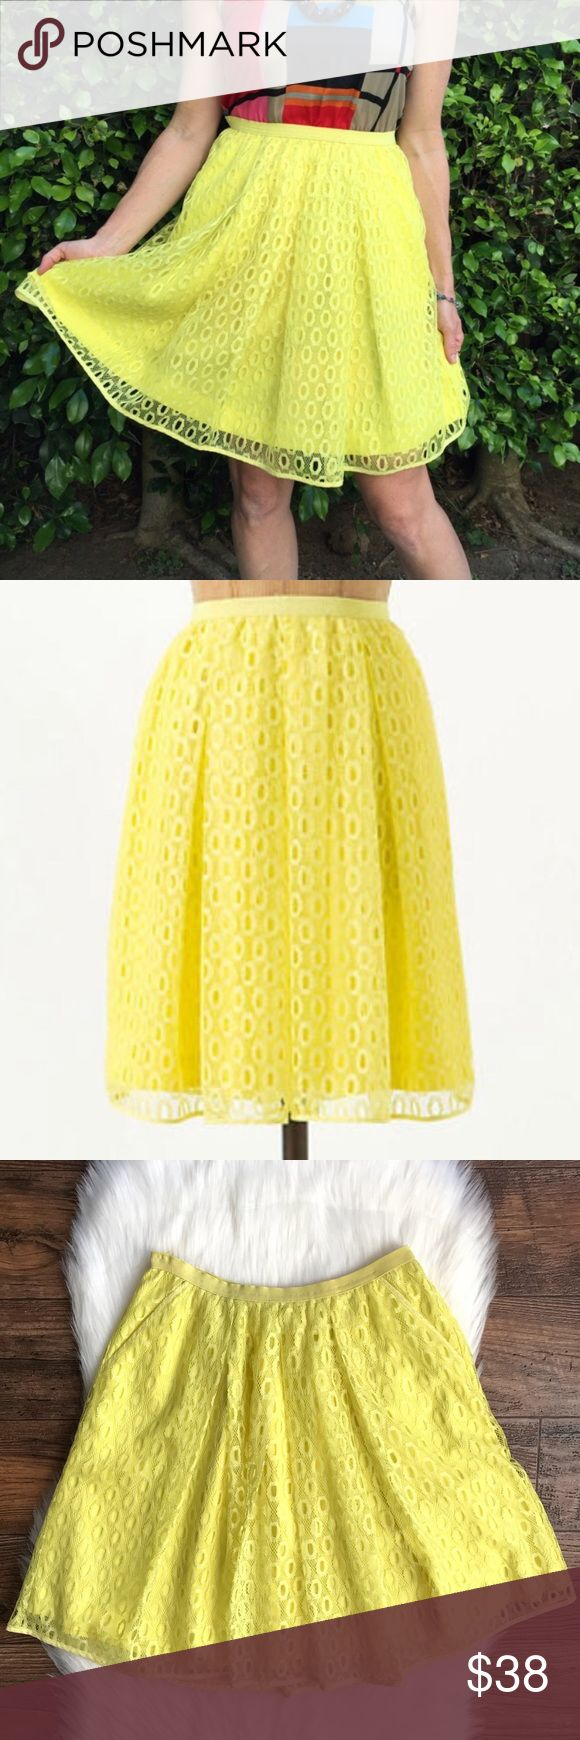 """Anthropologie Maeve Lawn Party Skirt 2 Neon Yellow Waist: 13"""" Length: 20.5""""  Side pockets; Lined  Condition: No Rips; Small stain on the front  100% Polyester   📦Orders are shipped within 24hrs! {Except weekends}📦  🚫No Trades🚫No Holds🚫 Anthropologie Skirts A-Line or Full"""